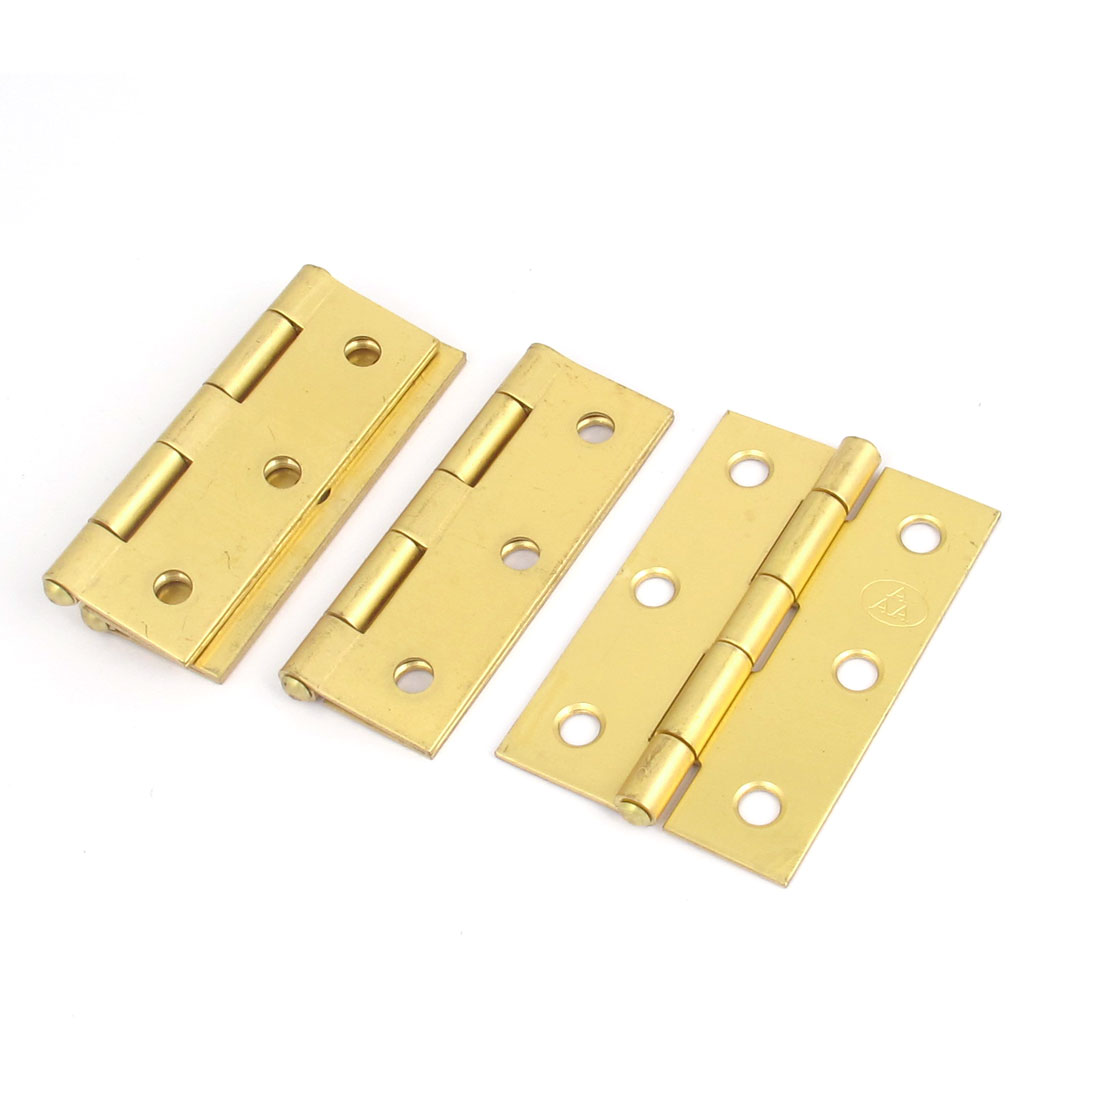 4pcs Cupboard Cabinet Furniture Hardware Brass Folding Door Butt Hinges 2.5""